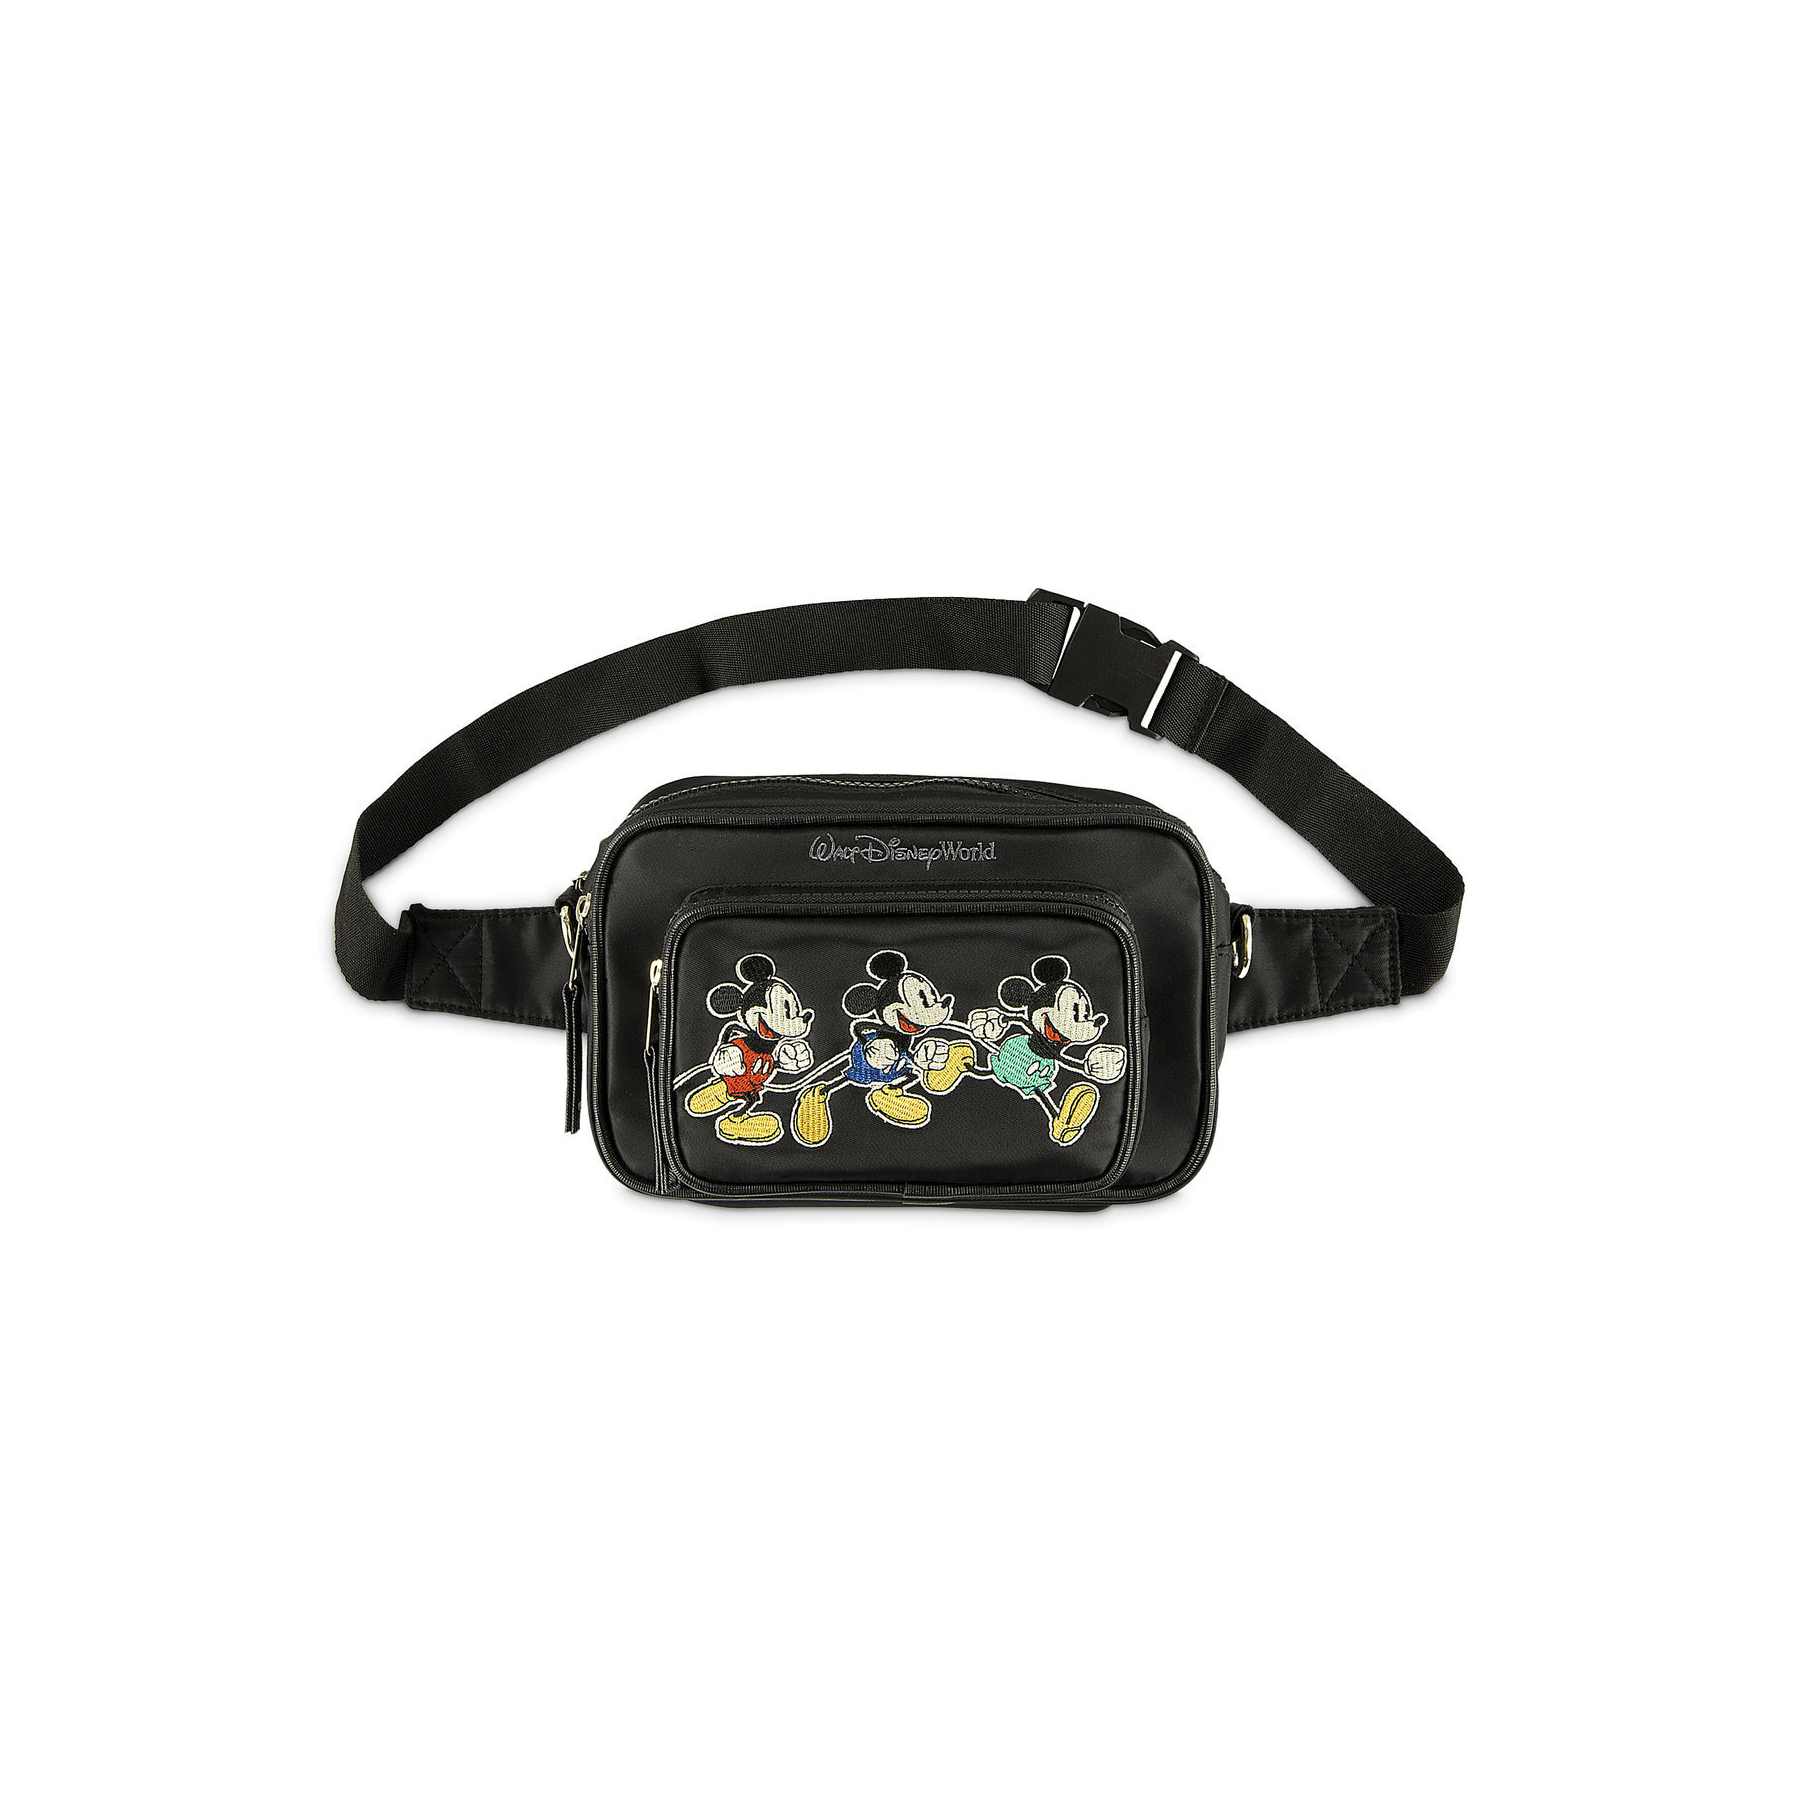 Disney Shop's Friends and Family Sale on Mickey Mouse Fanny Pack